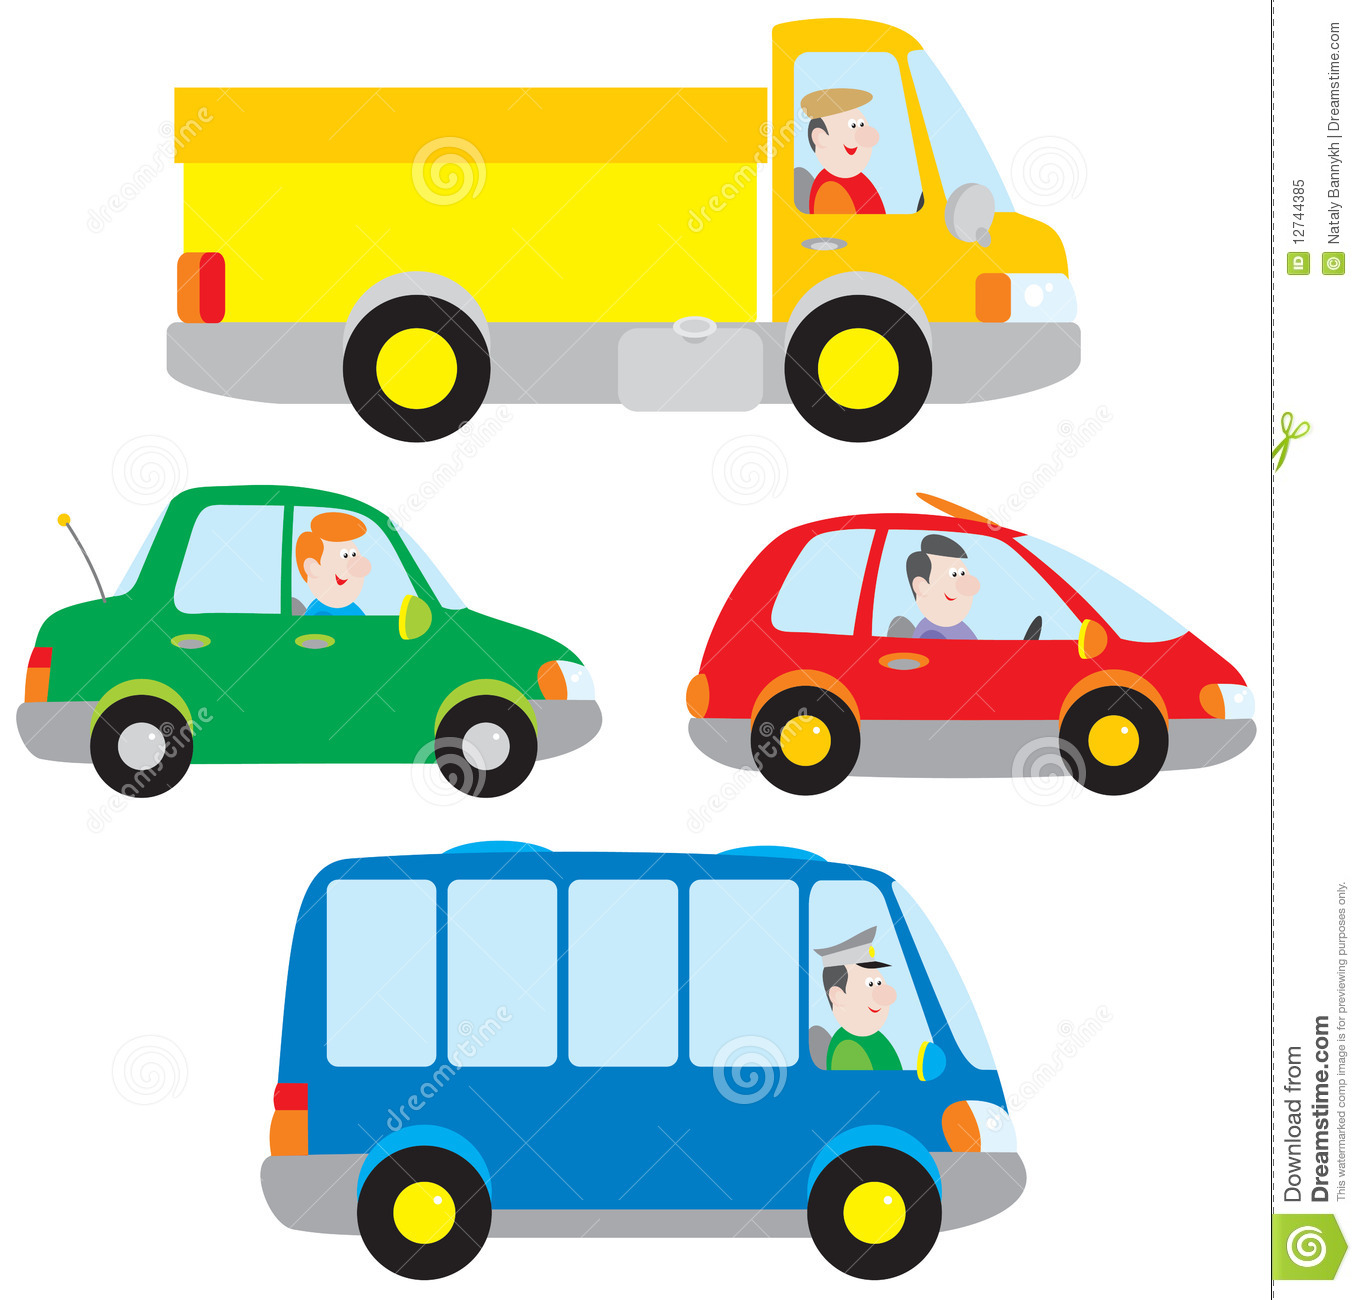 Cars, Truck And Bus Royalty Free Stock Photo - Image: 12744385